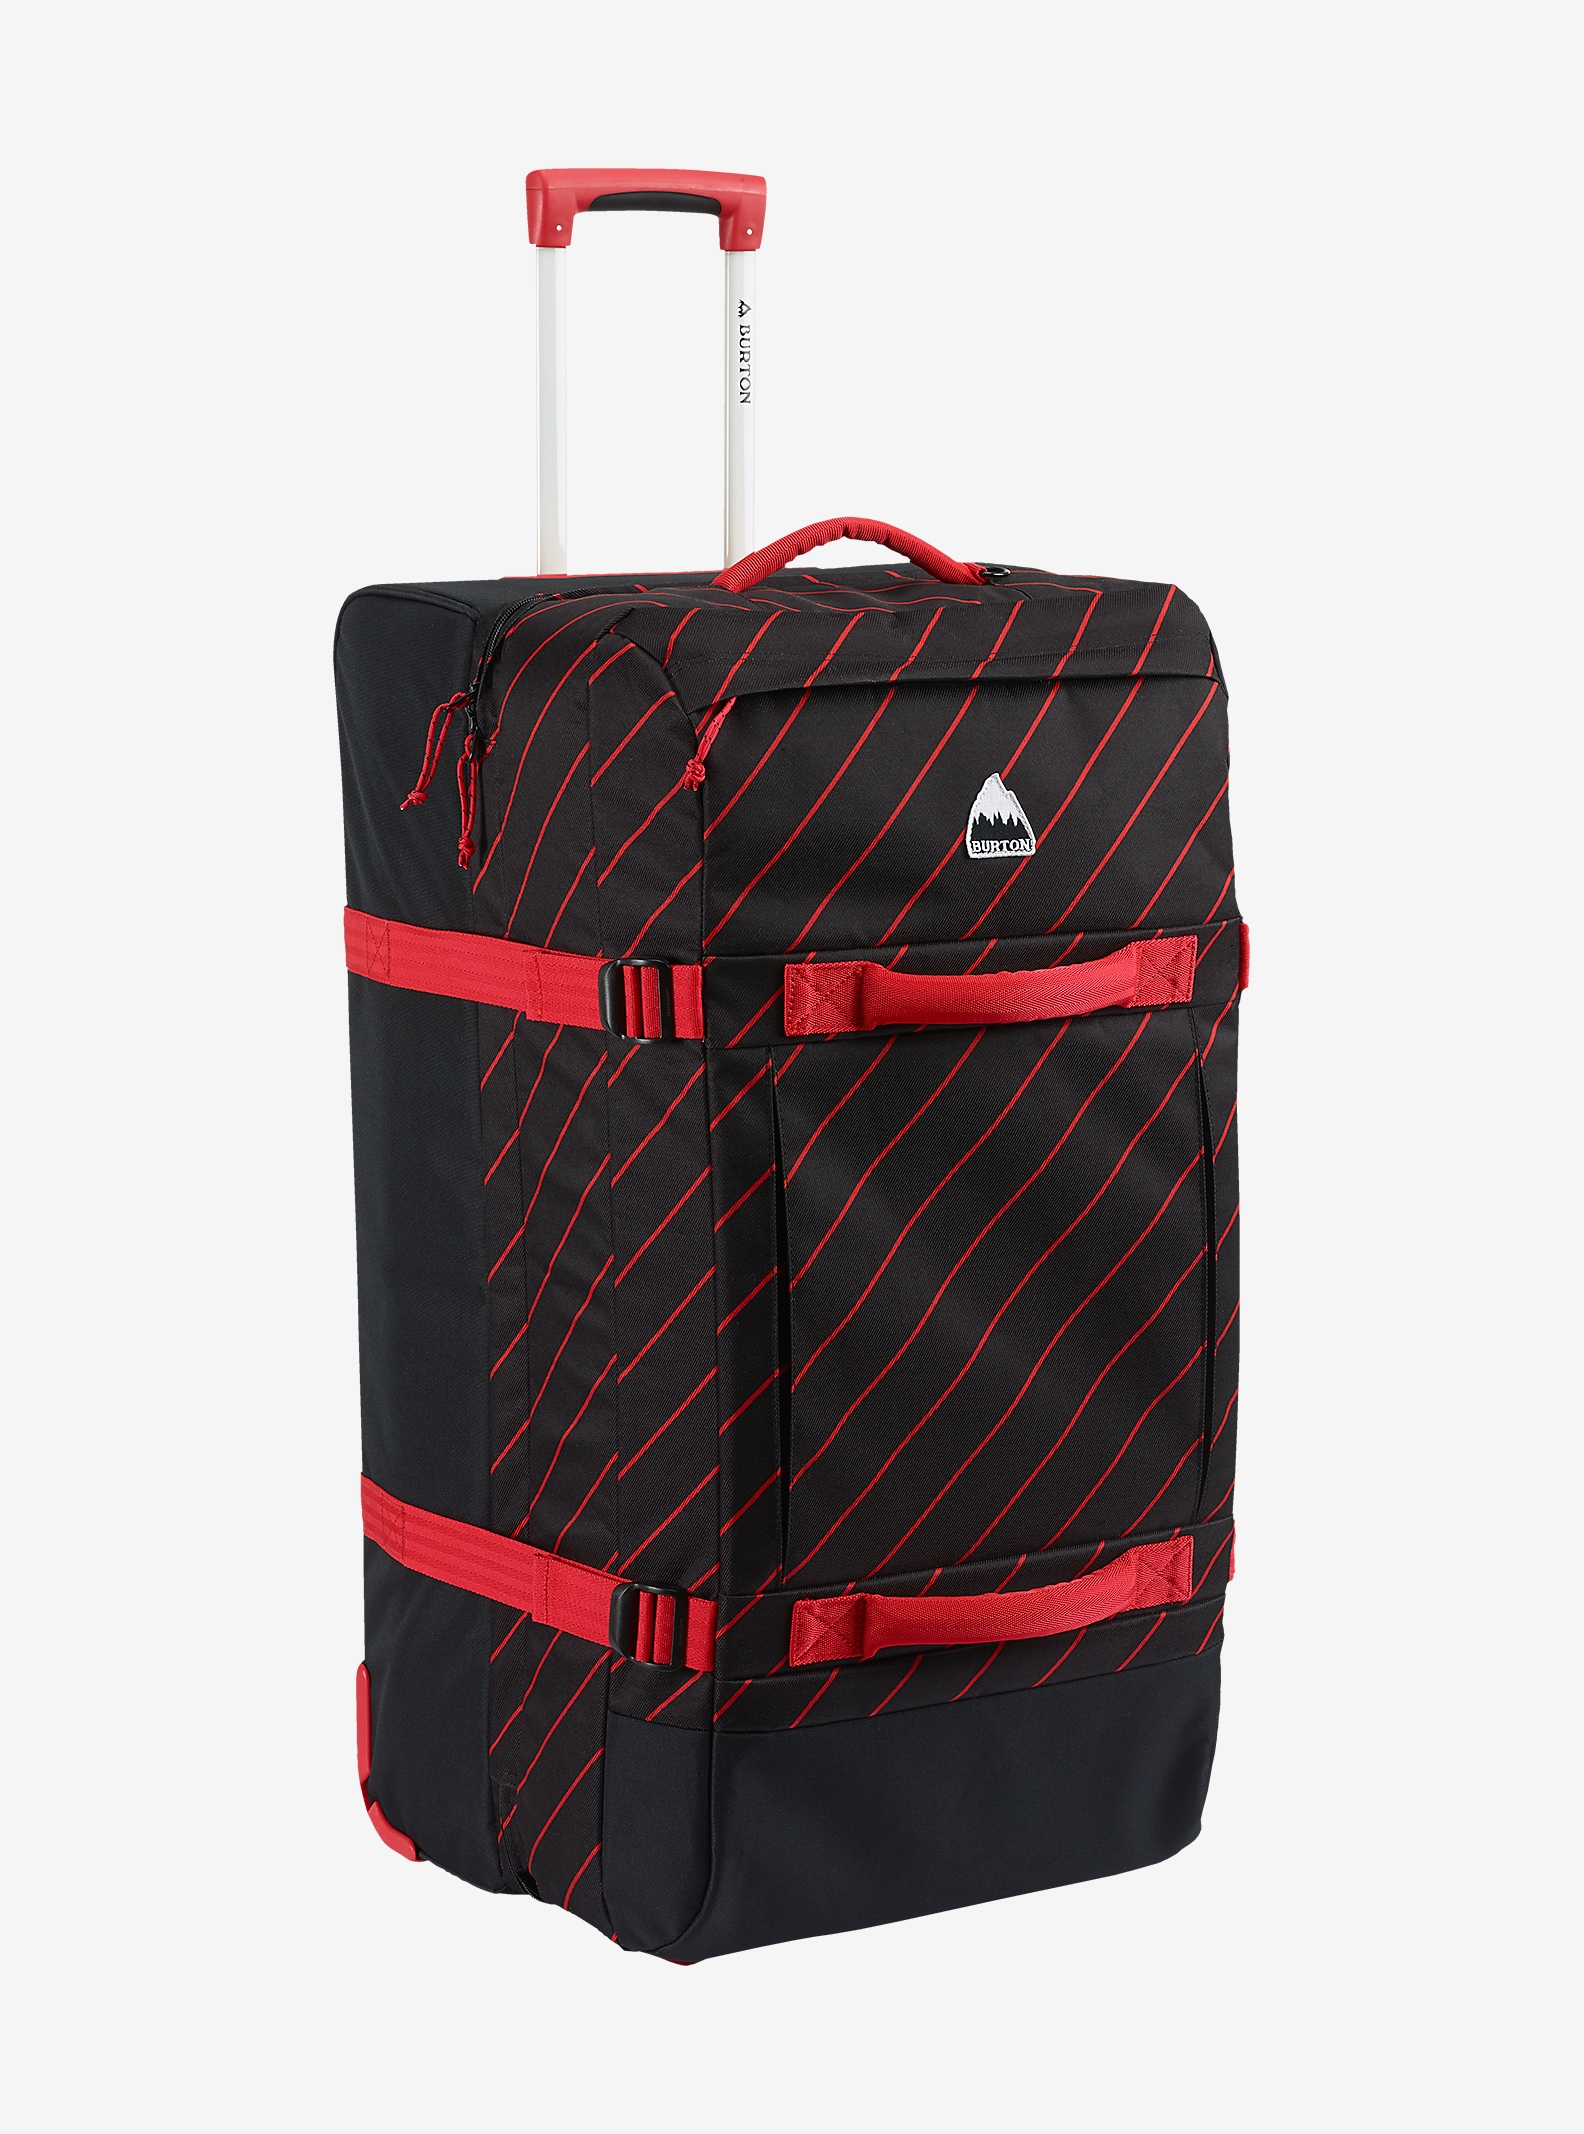 Burton Exodus Roller Travel Bag shown in Performer